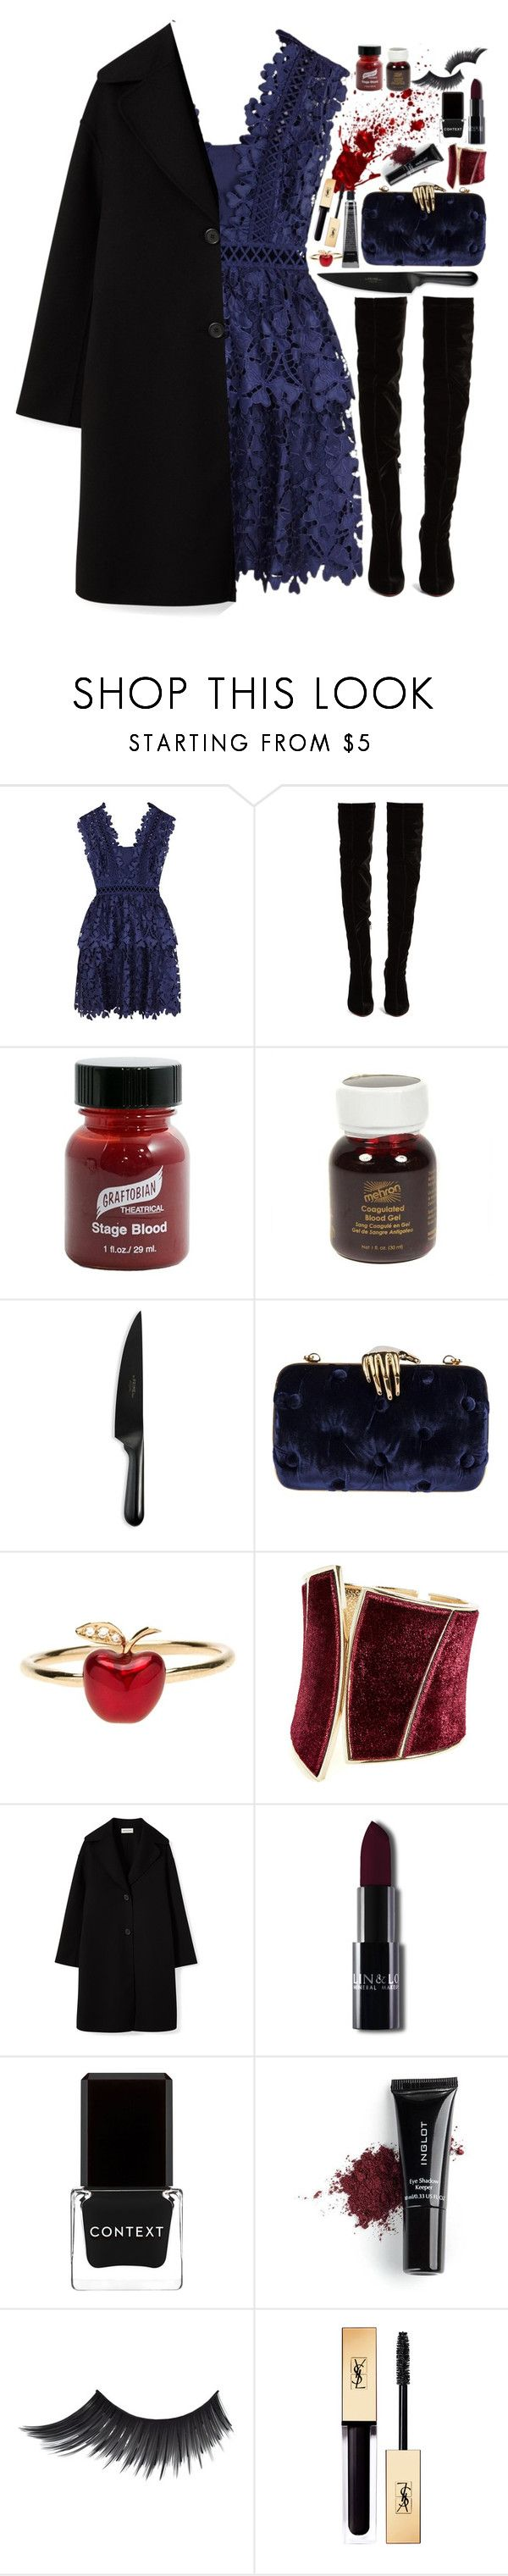 """Halloween."" by ellie-directioner ❤ liked on Polyvore featuring self-portrait, Christian Louboutin, Graftobian, Mehron, Chicago Cutlery, Benedetta Bruzziches, Alison Lou, GUESS by Marciano, Context and Inglot"